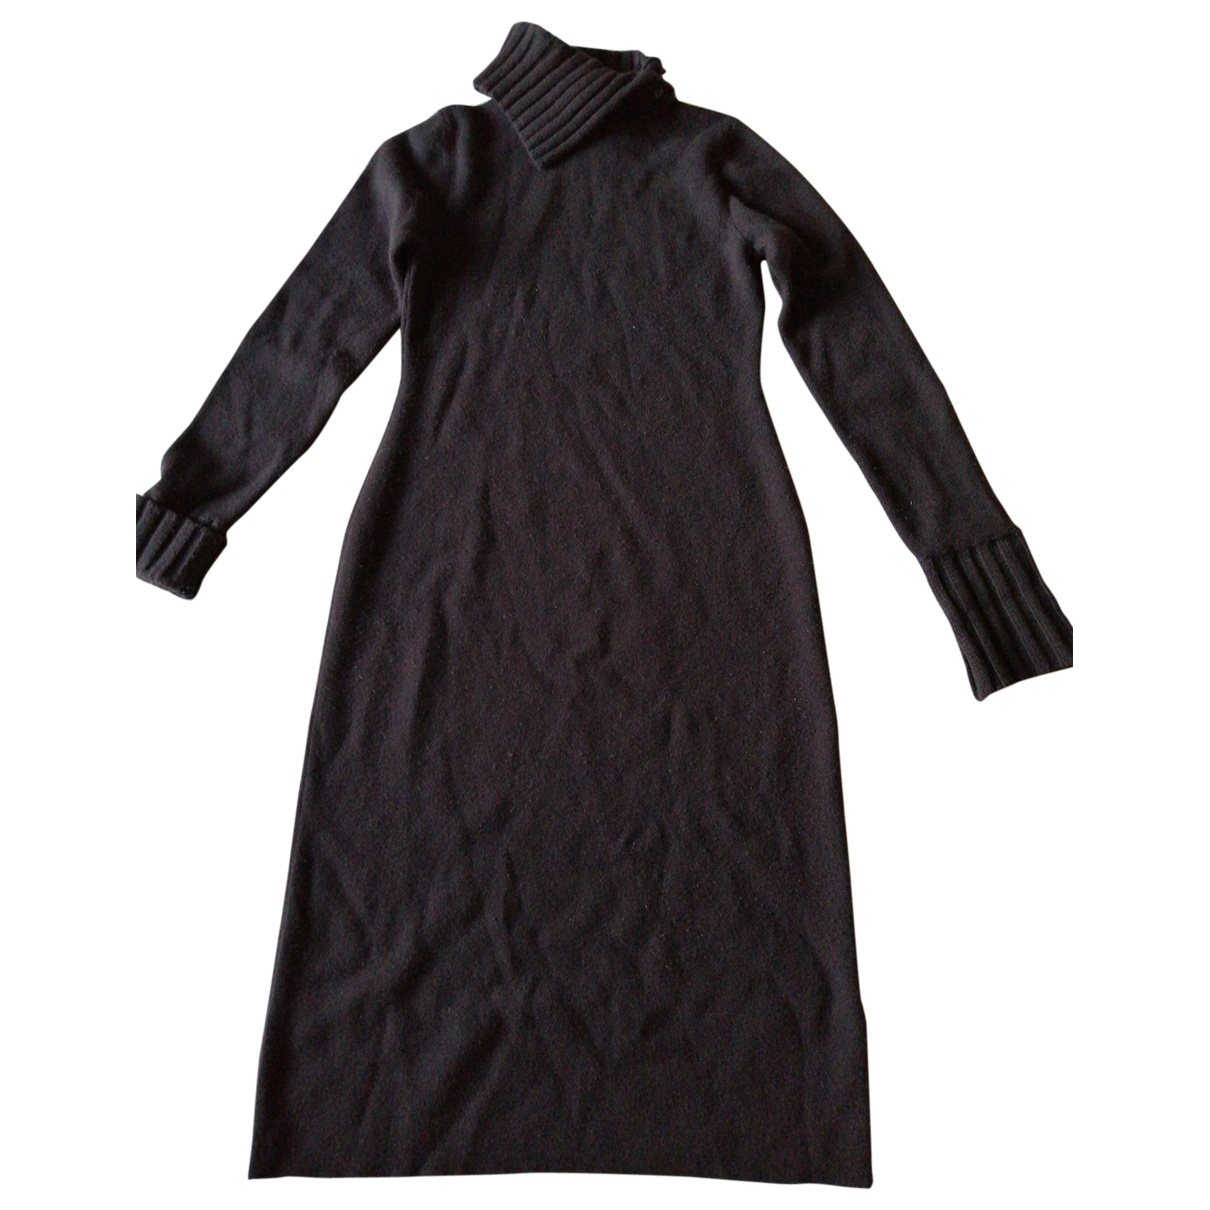 Malo \N Brown Cashmere dress for Women 40 IT